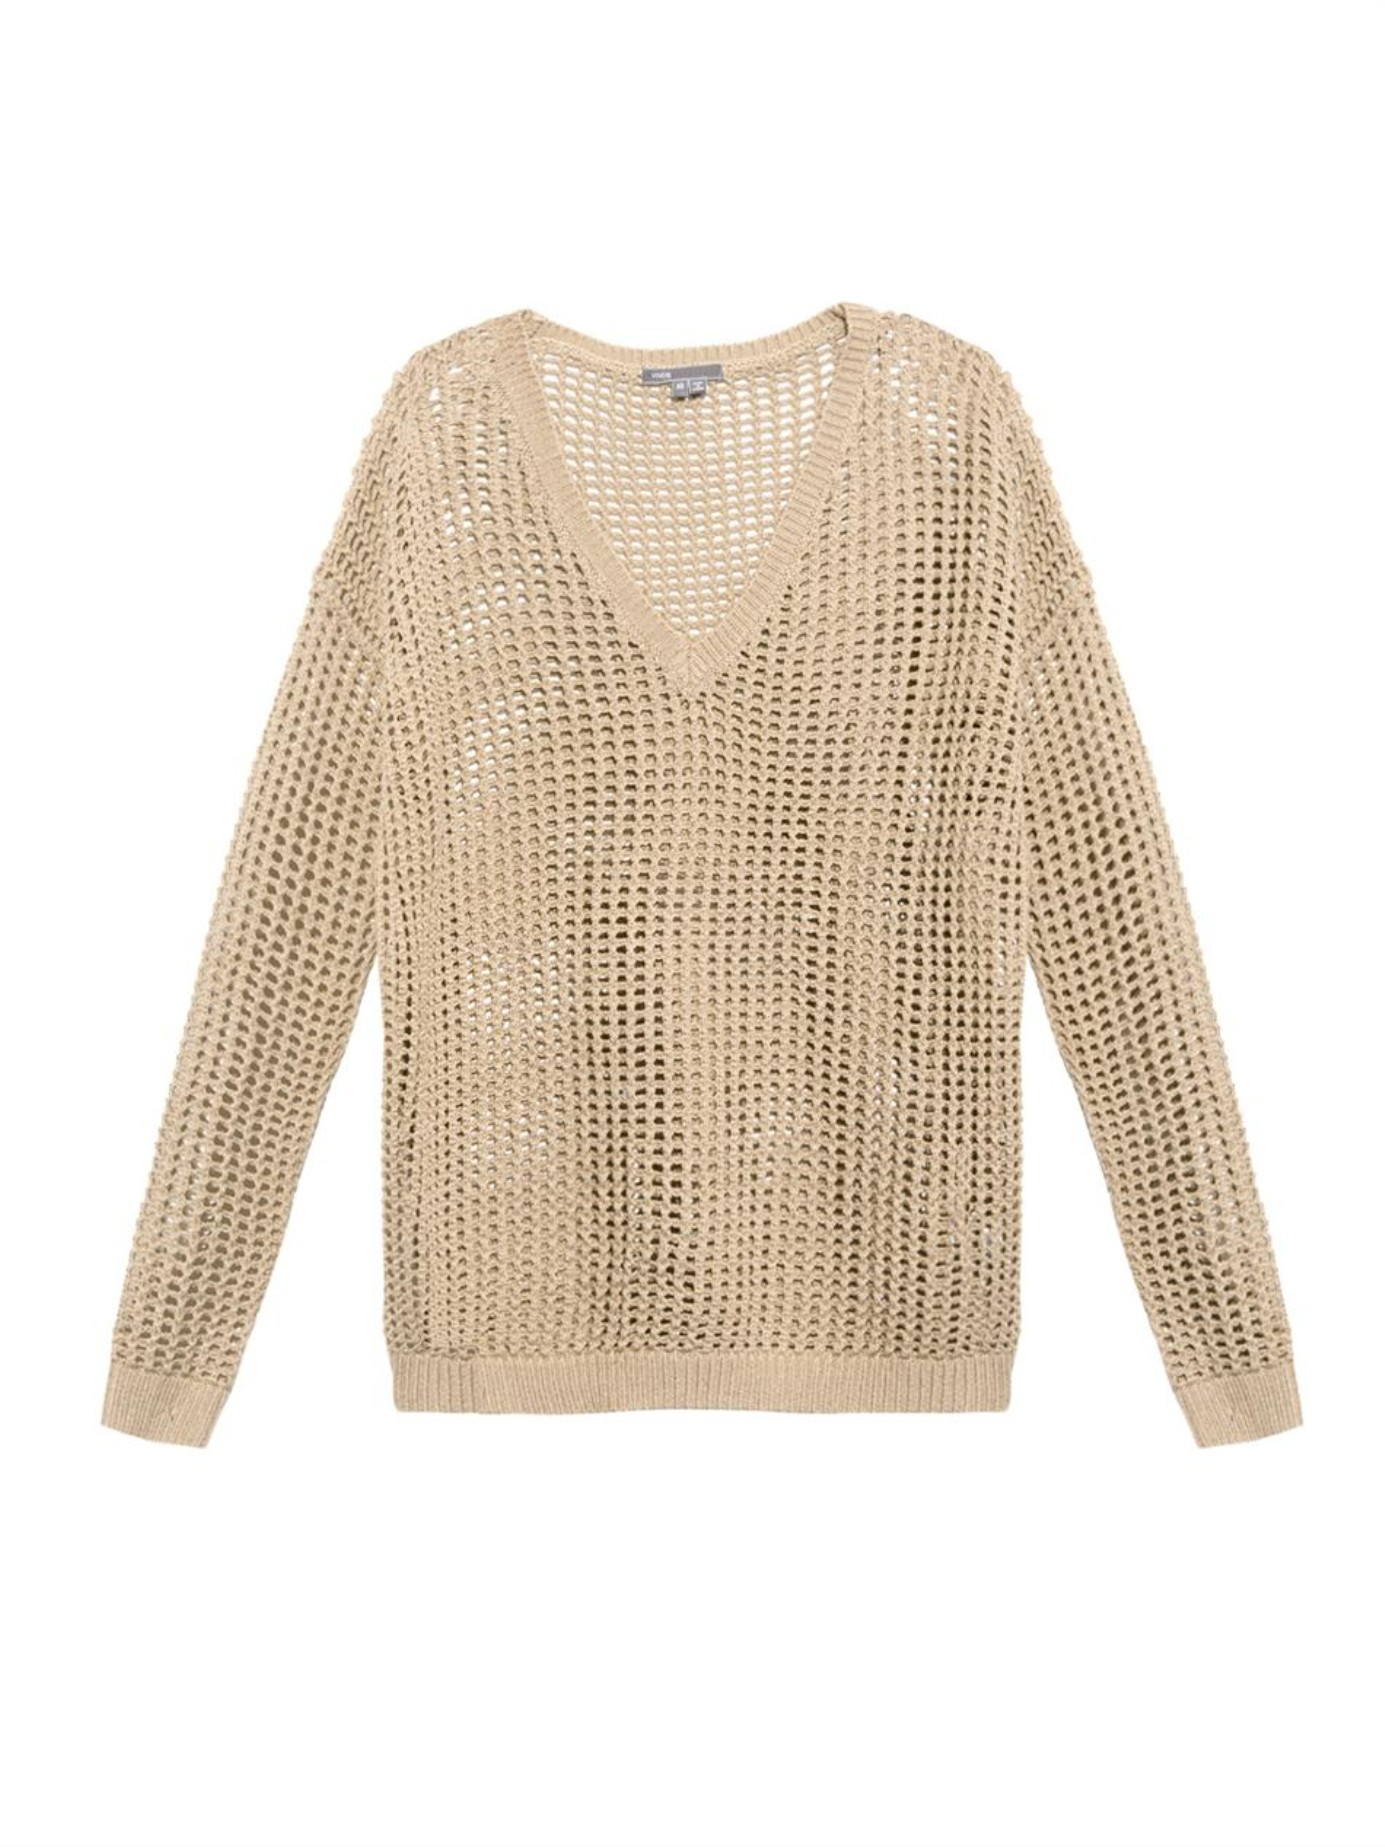 Vince Grid Mesh Open-knit Cotton Sweater in Natural | Lyst